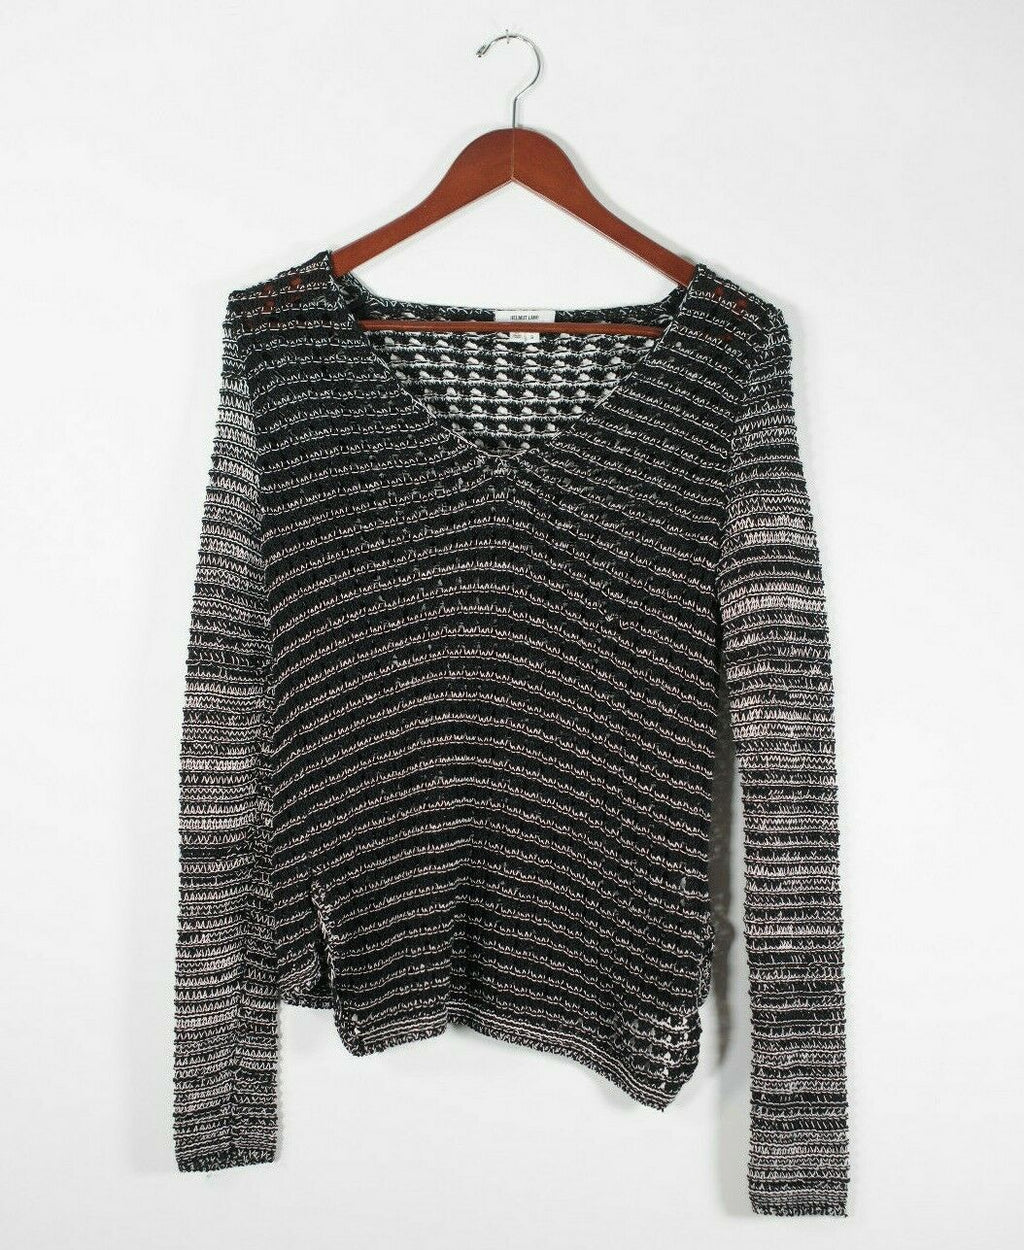 Helmut Lang Womens Small Black White Pullover Sweater Open Knit V Neck Top Shirt